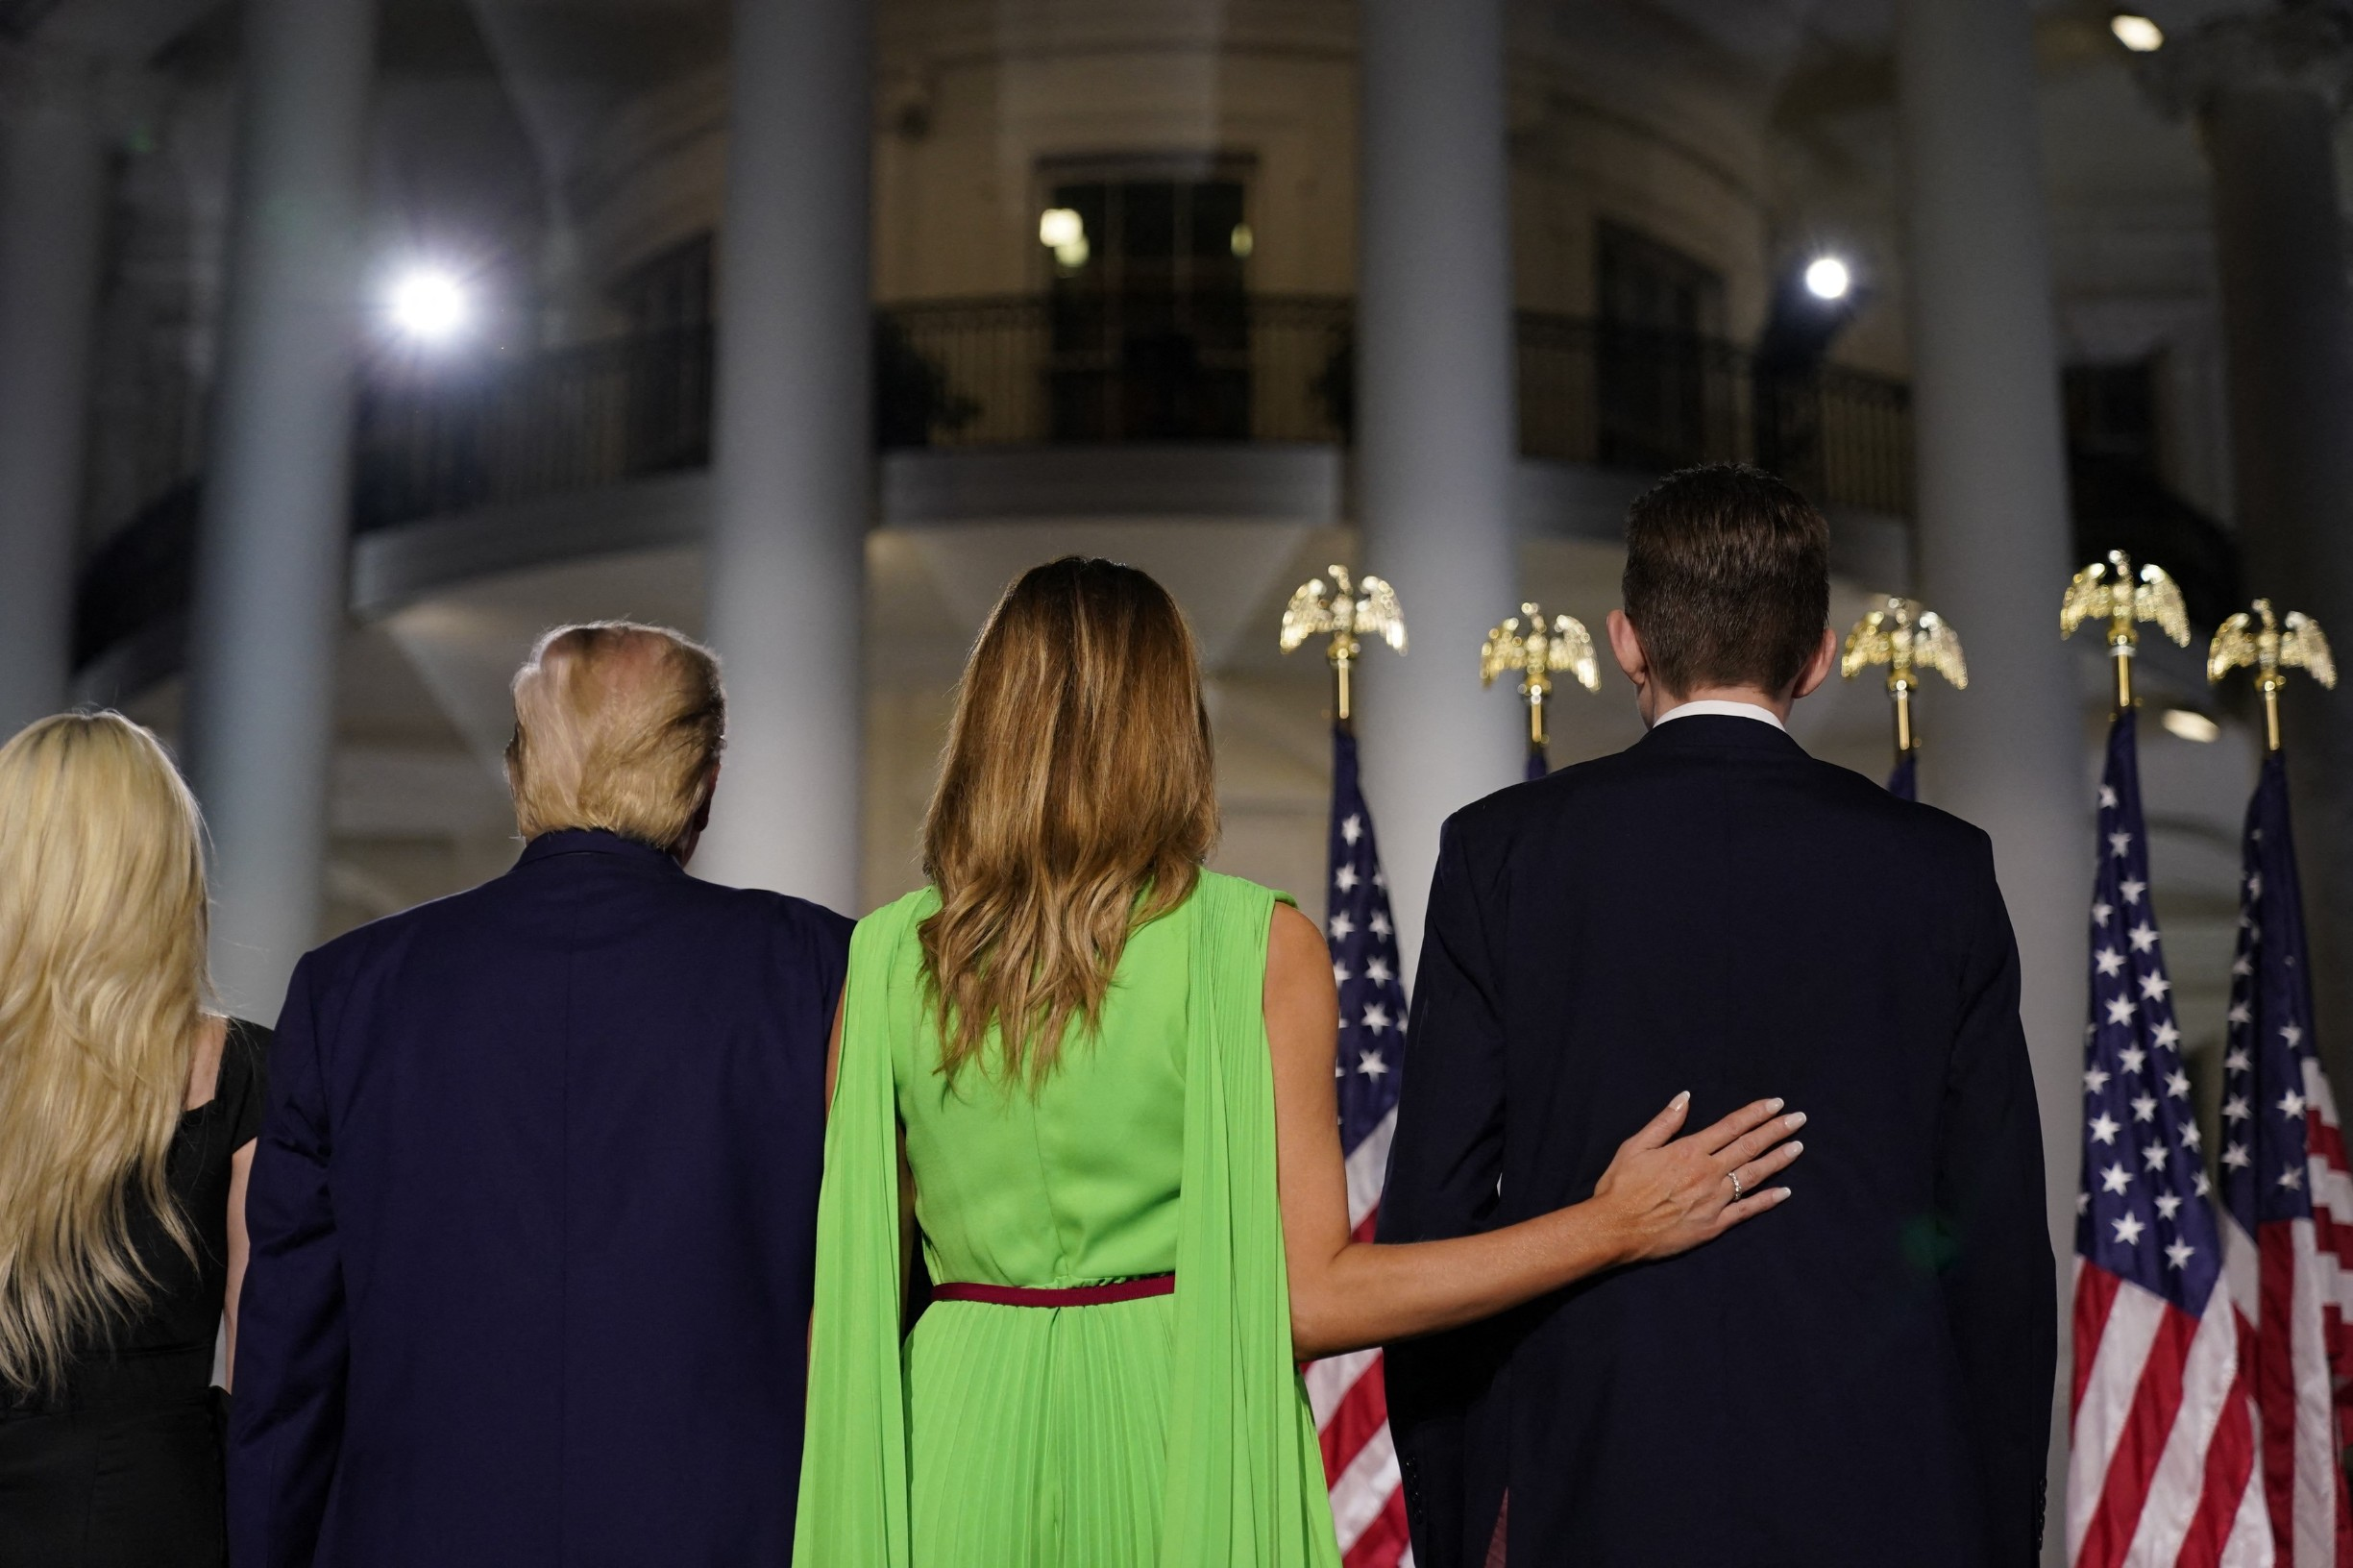 August 27, 2020 - Washington, DC, United States: Tiffany Trump, Donald Trump, Melania Trump, Barron Trump. U.S. President Donald Trump formally accepts the 2020 Republican presidential nomination during his Republican National Convention address from the South Lawn at the White House. (Erin Scott/Polaris) ///,Image: 555282660, License: Rights-managed, Restrictions: , Model Release: no, Credit line: Pool/ABACA / Abaca Press / Profimedia